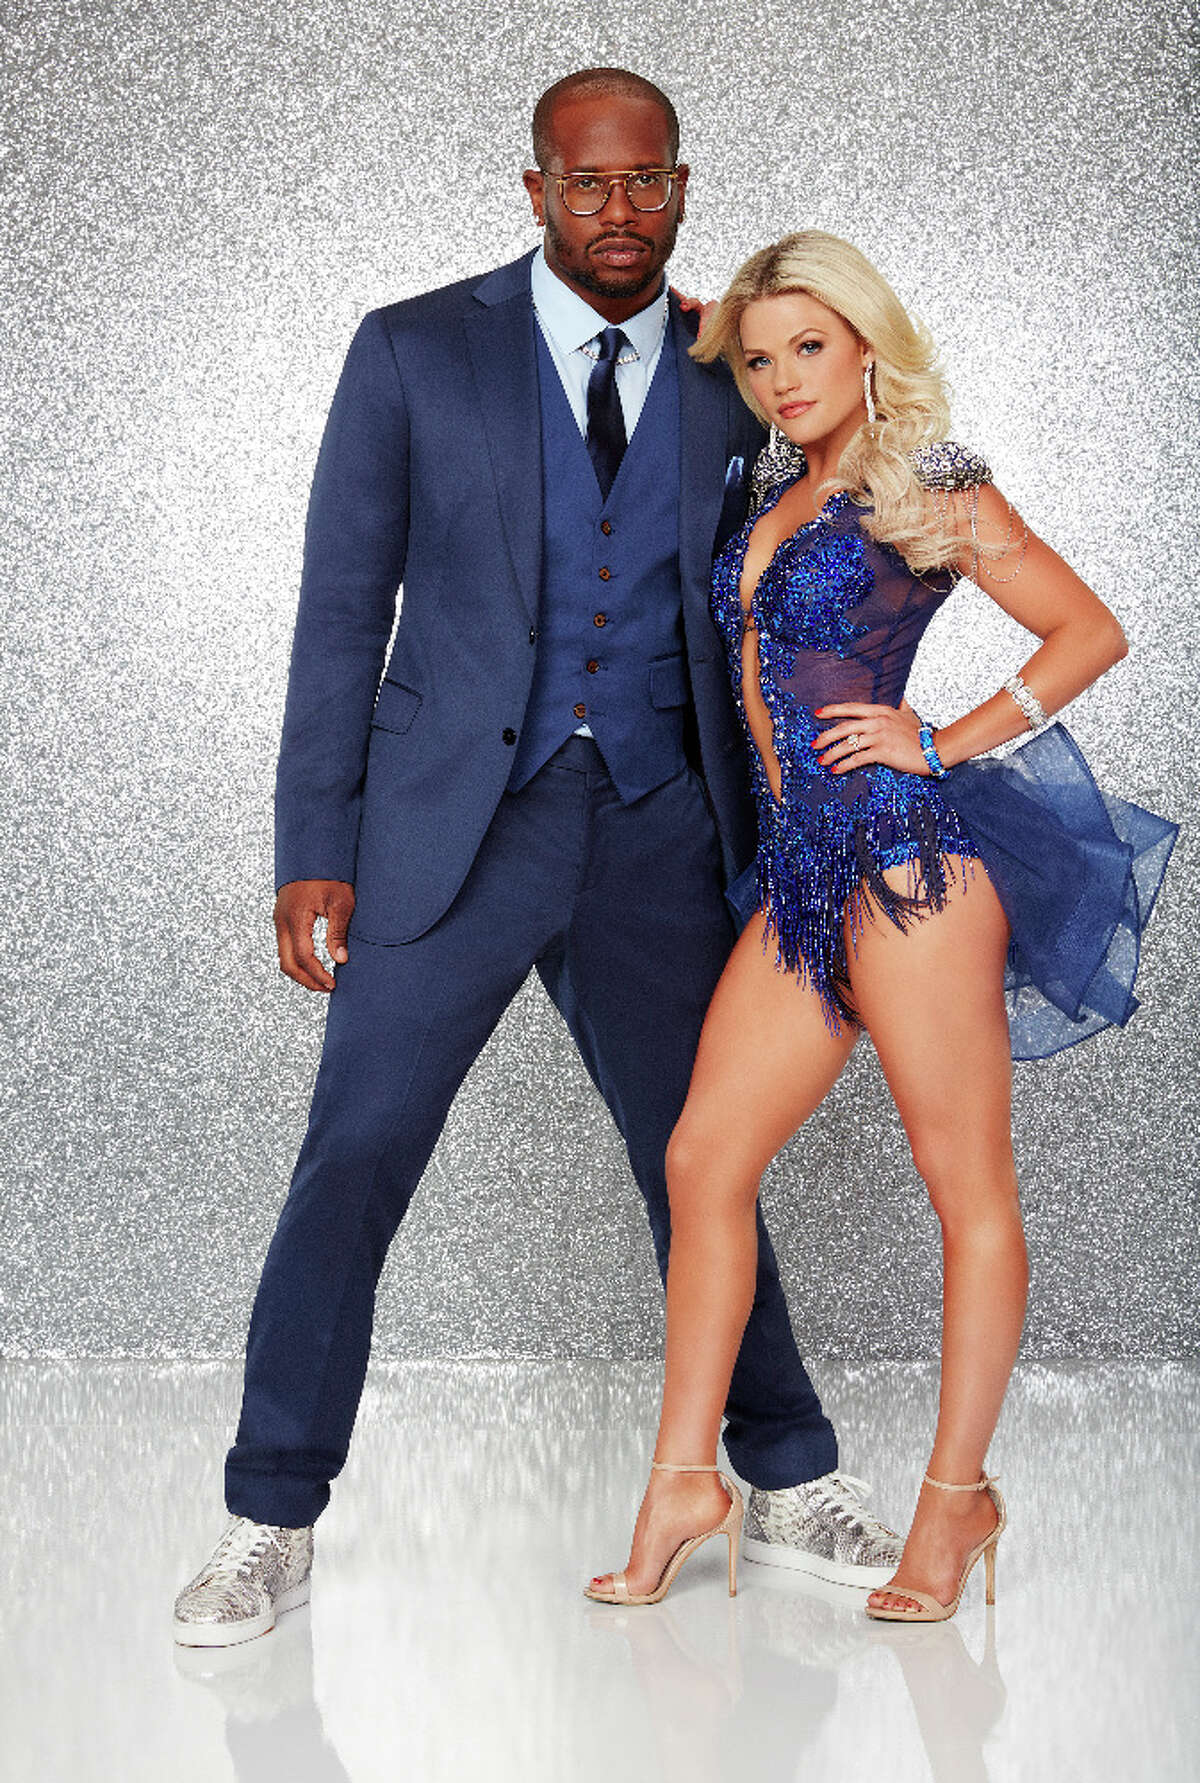 DANCING WITH THE STARS - VON MILLER AND WITNEY CARSON - The stars grace the ballroom floor for the first time on live national television with their professional partners during the two-hour season premiere of